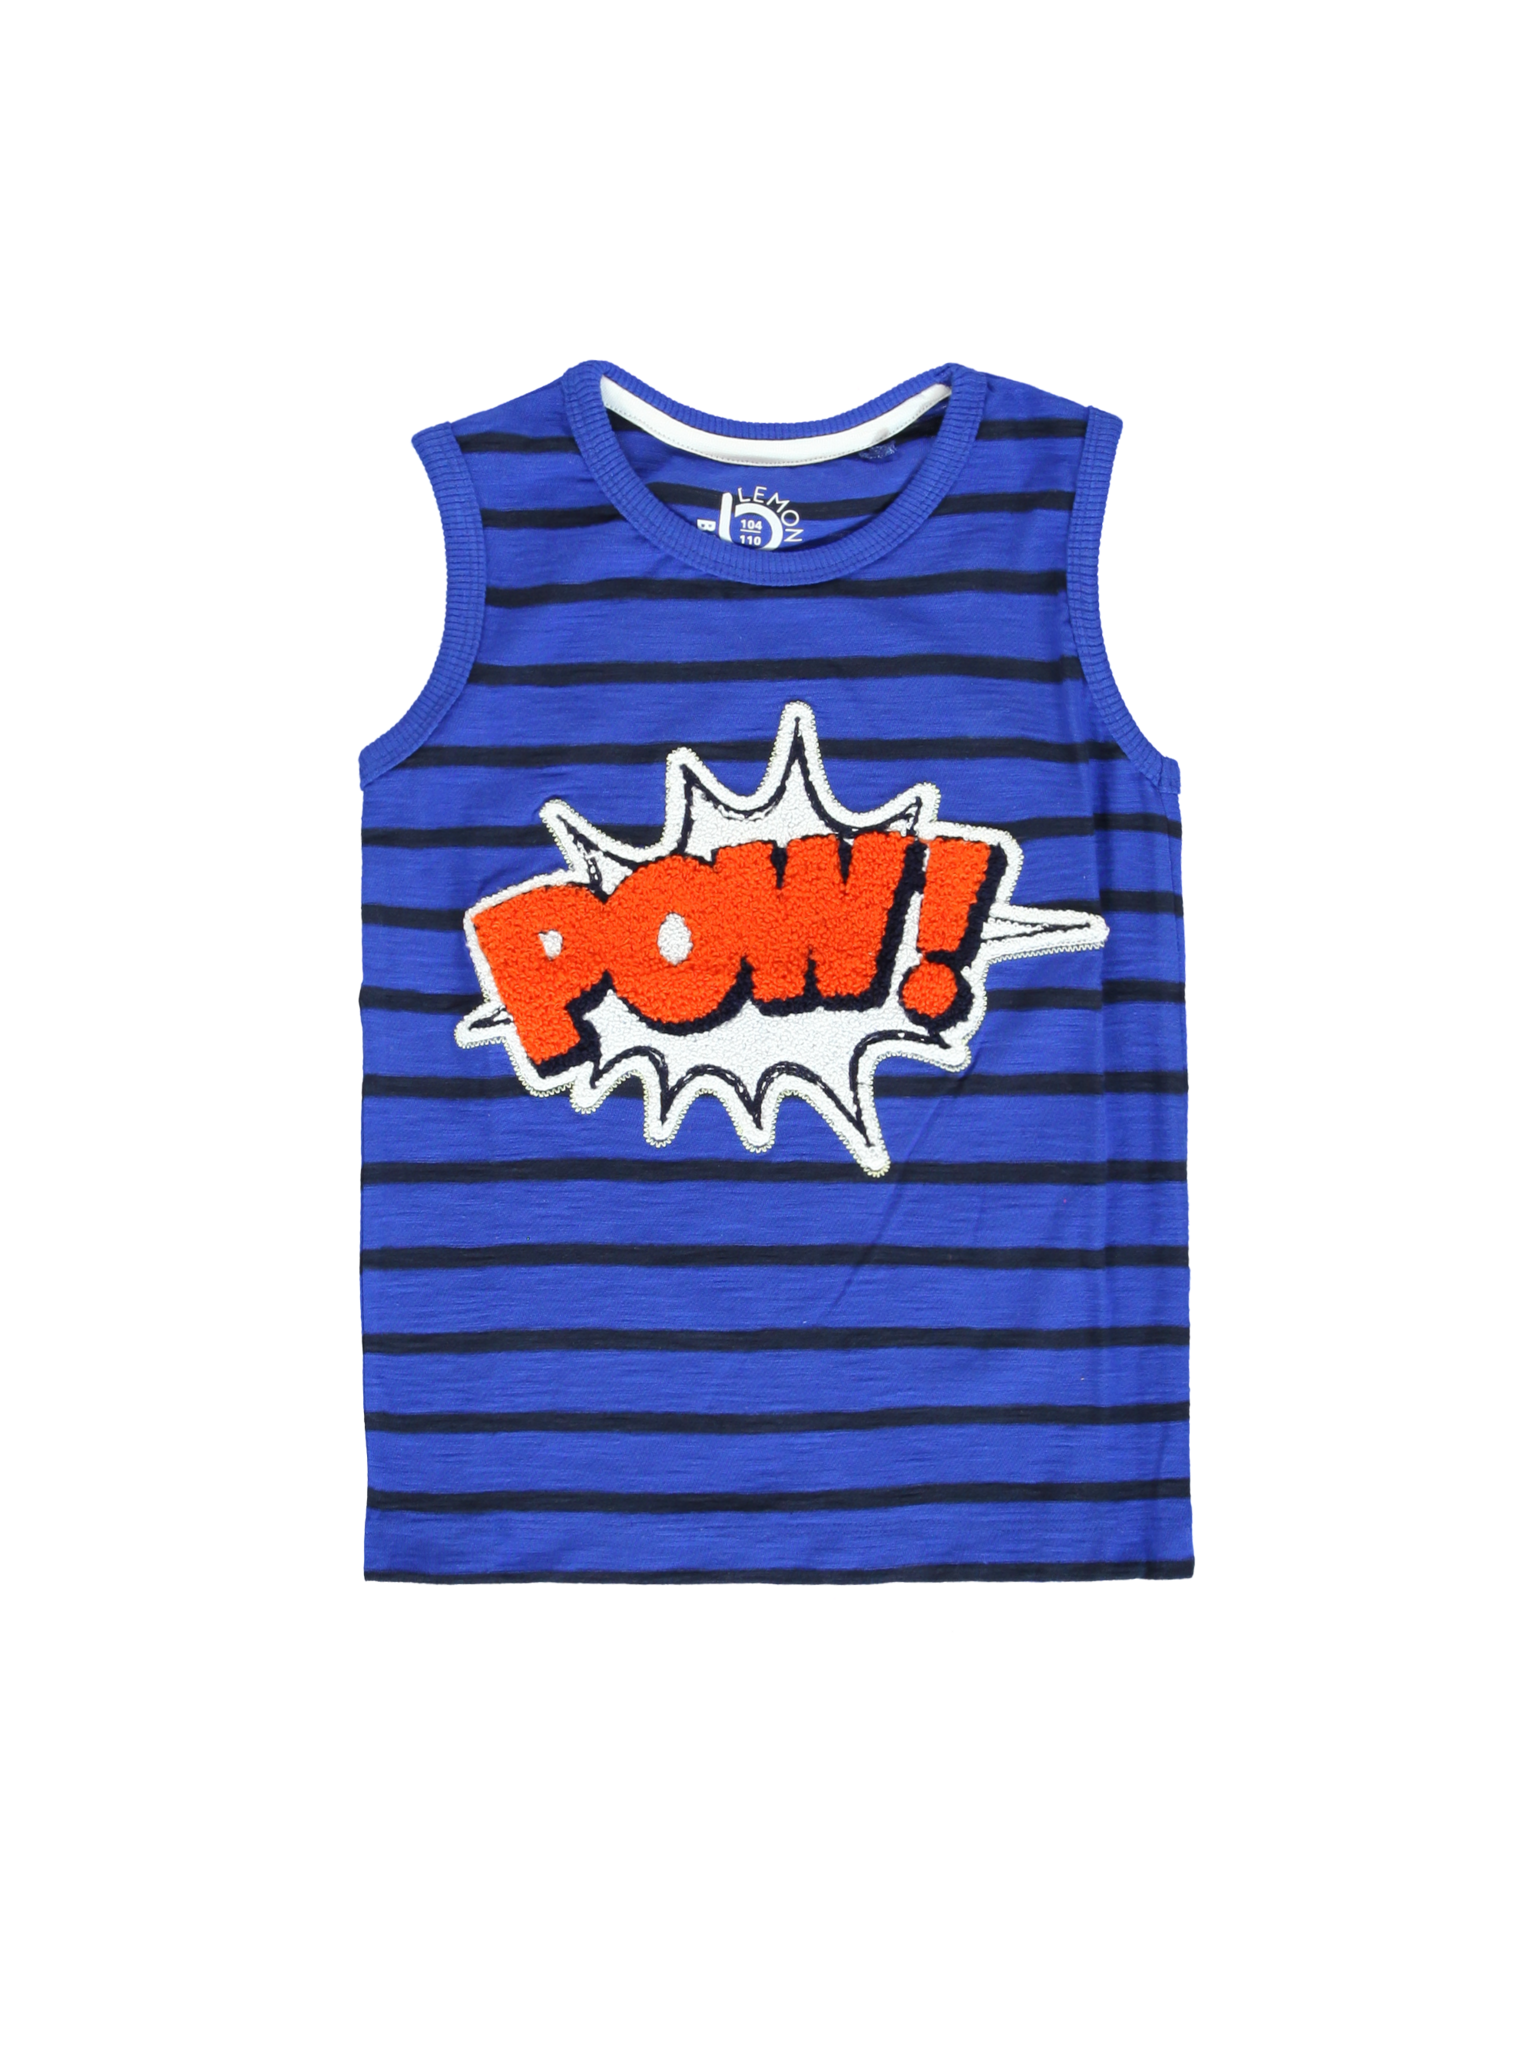 All Brands | Summerproducts Small Boys | Singlet | 12 pcs/box